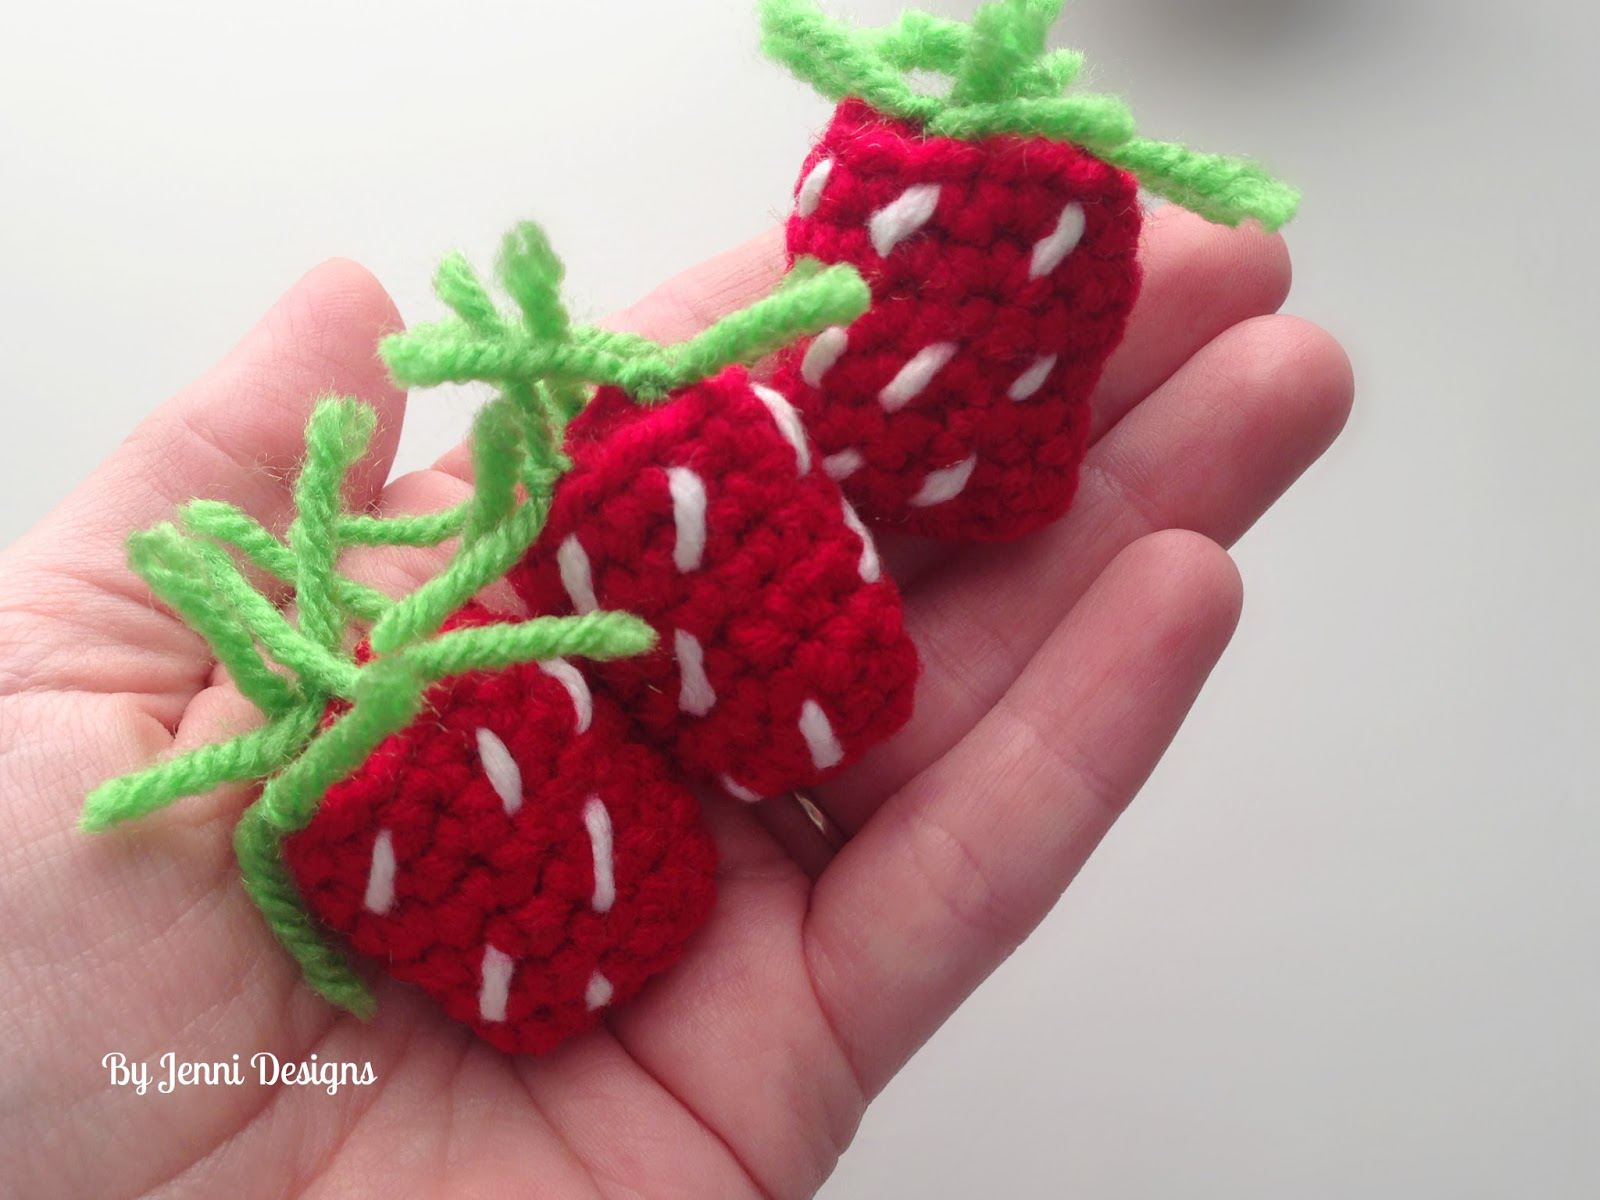 25 Fruit and Vegetable Crochet Patterns